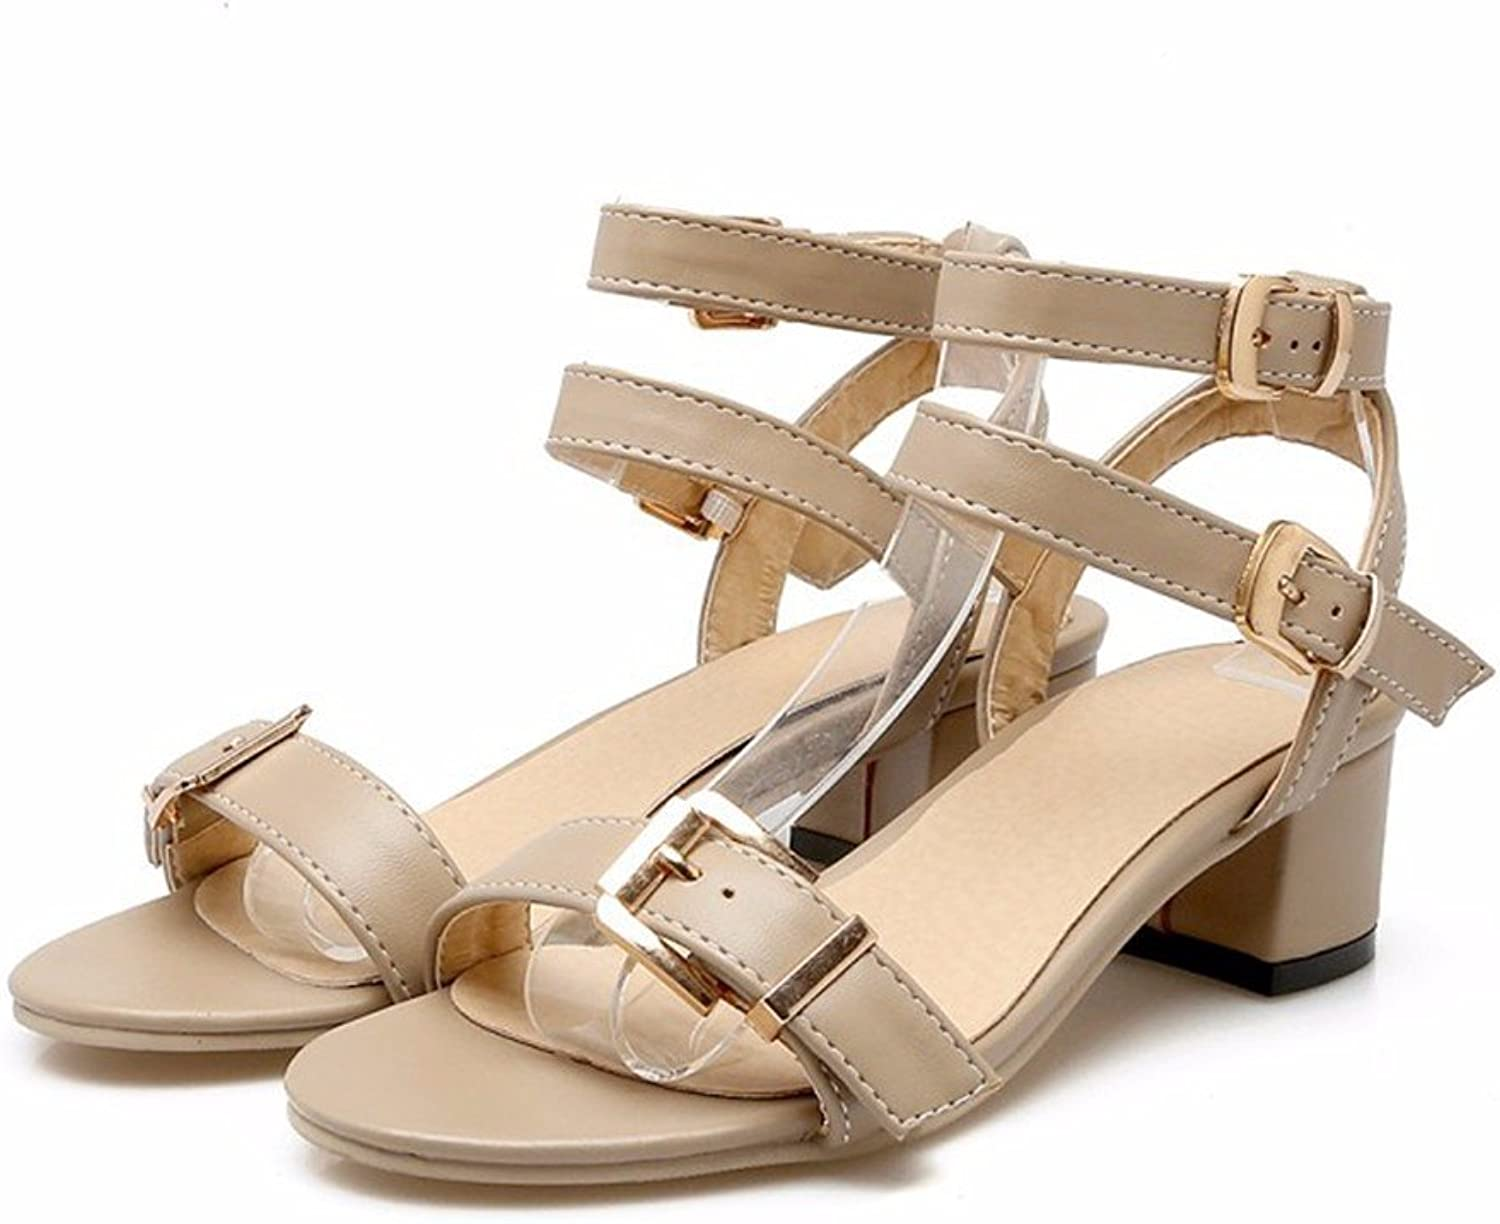 With the large number in sandals ladies sandals buckle sandals with large numbers.-YU&XIN